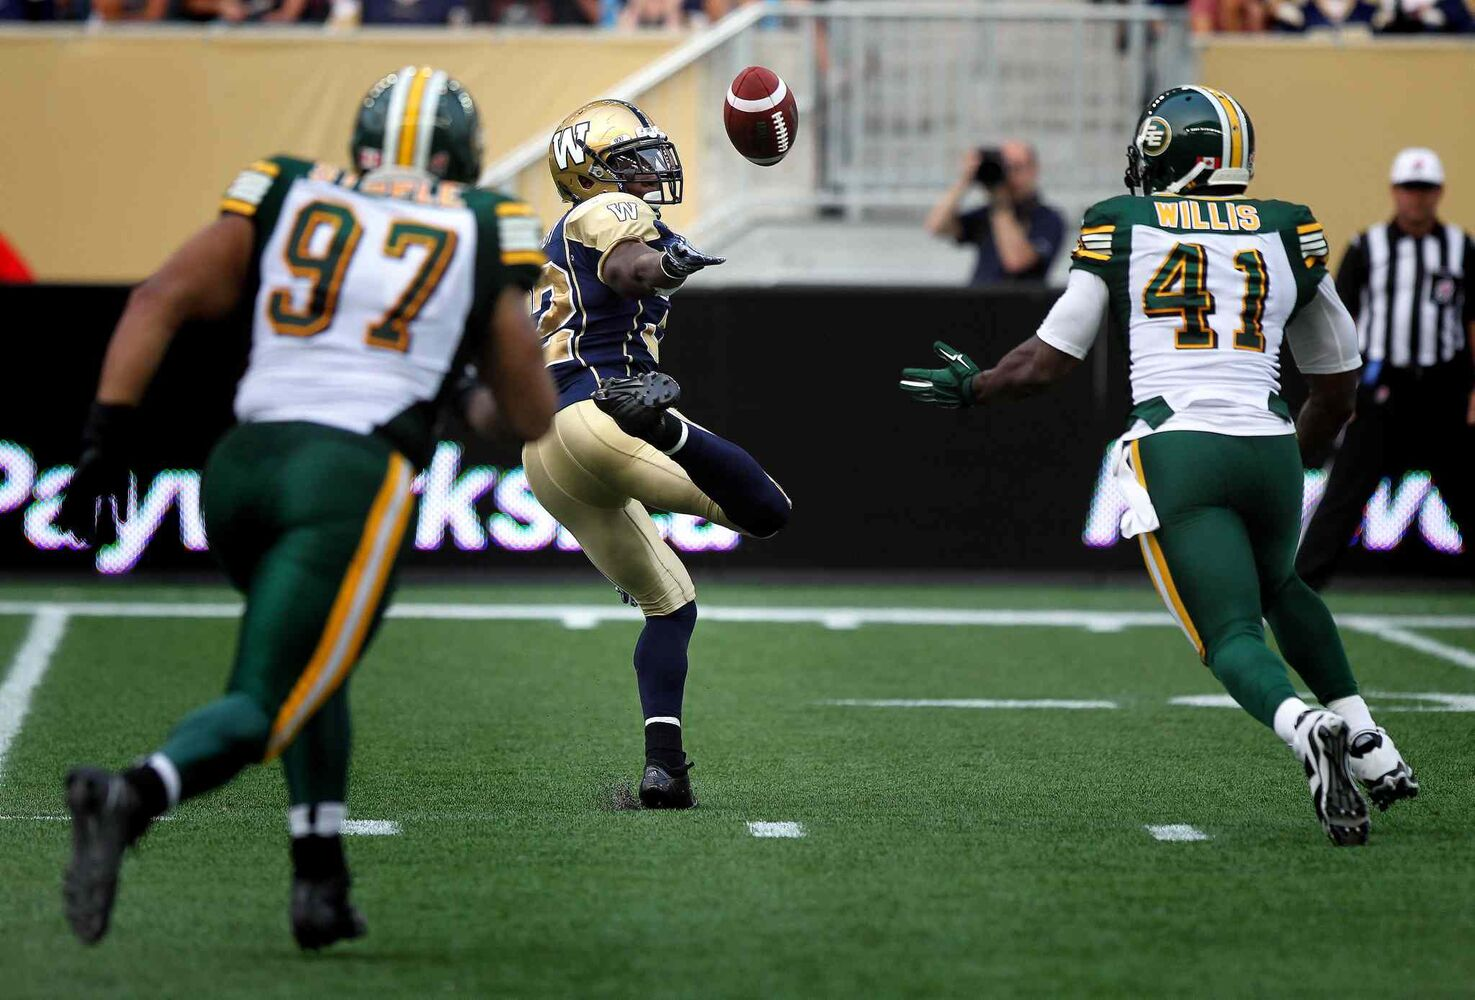 Winnipeg Blue Bombers' running back Nic Grigsby bobbles a pass into the waiting hands of Edmonton Eskimos' #41 Odell Willis early in the game Thursday. Willis took it and ran to score the Eskimo's opening touch down.